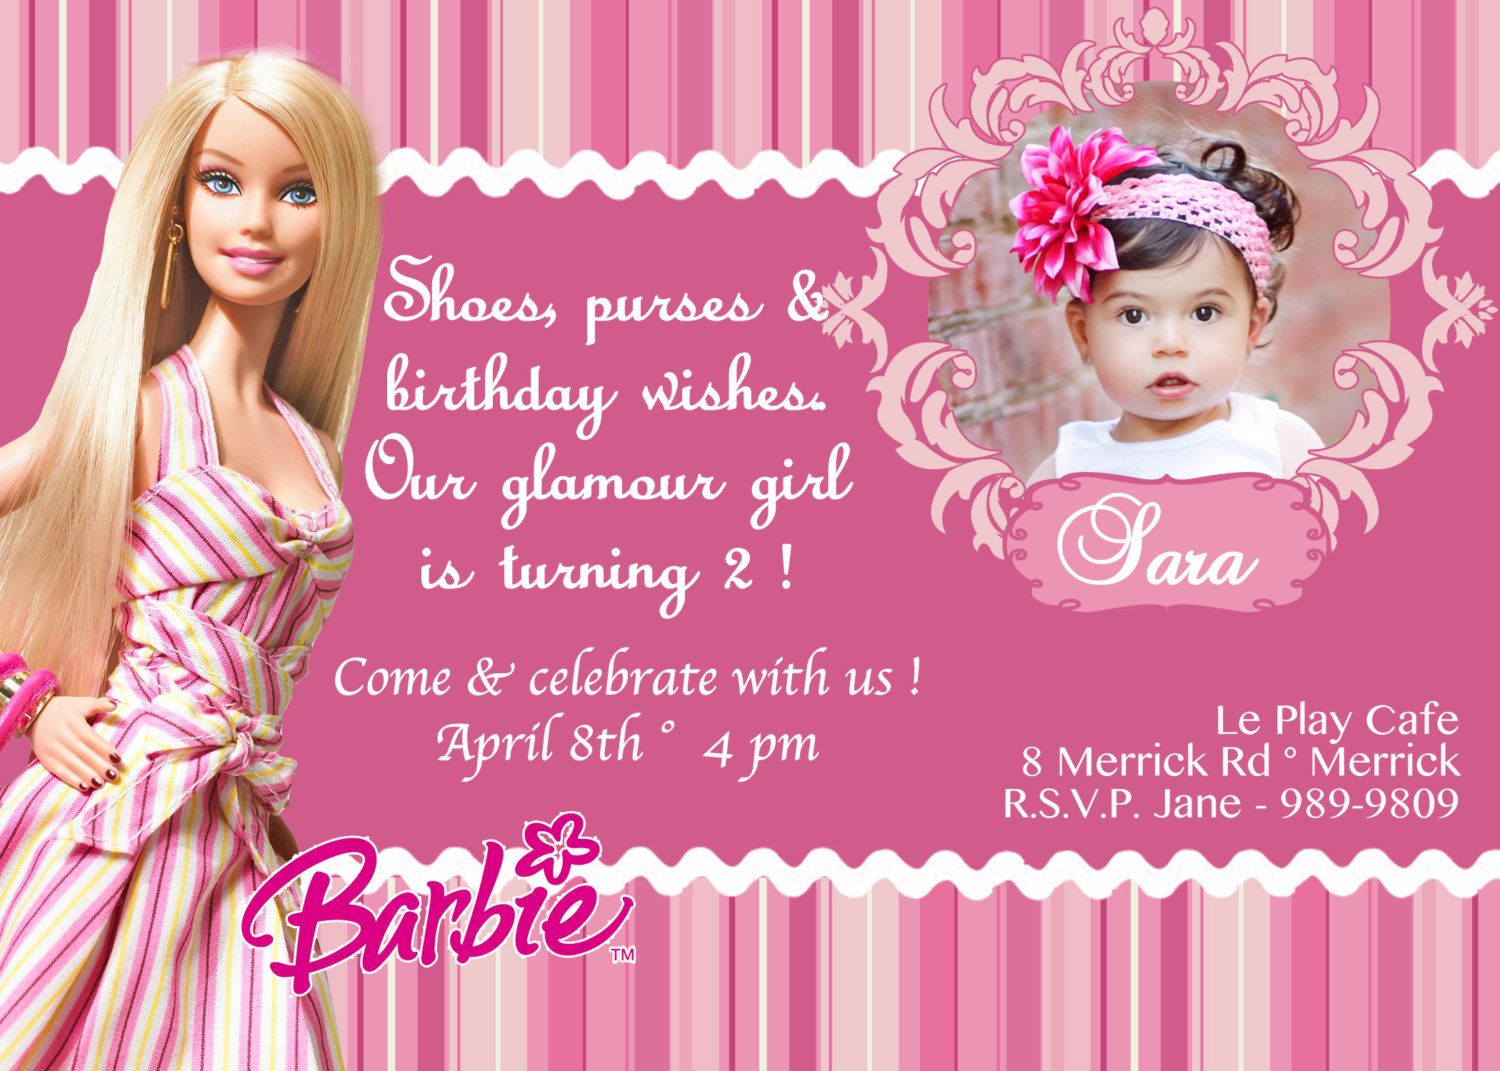 barbie birthday invitations barbie